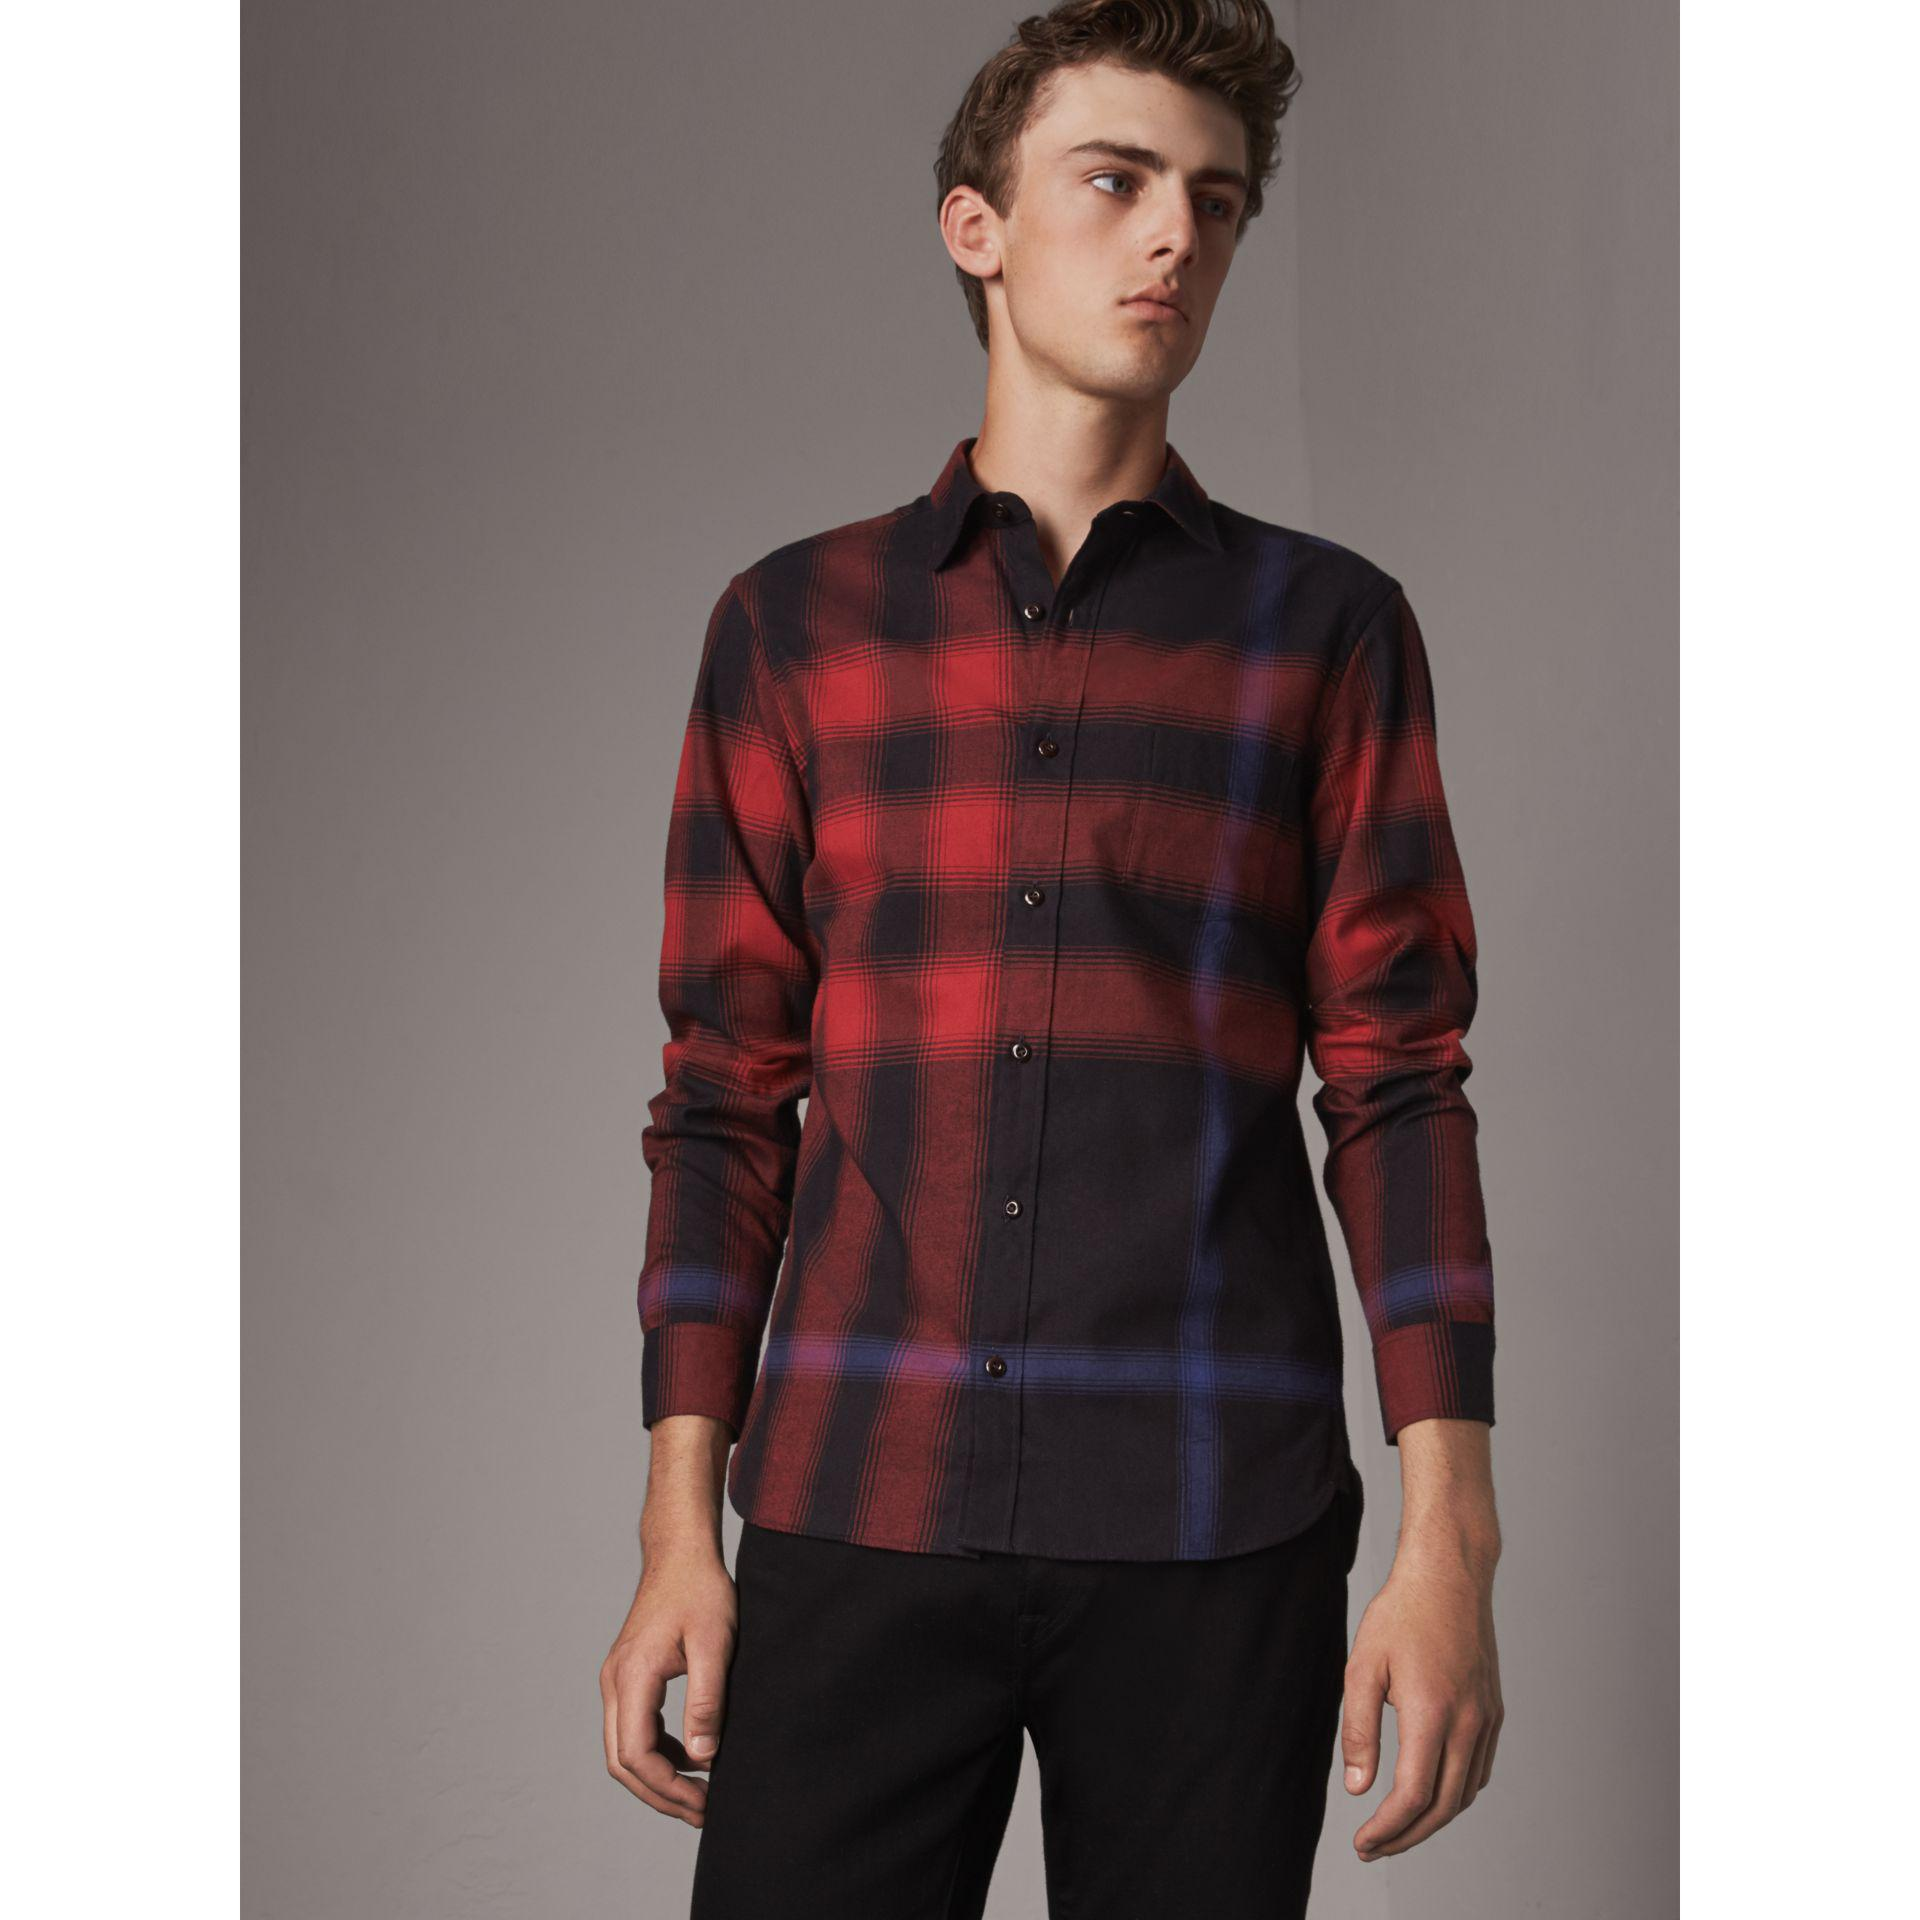 Lyst - Burberry Ombré Check Cotton Flannel Shirt in Red for Men